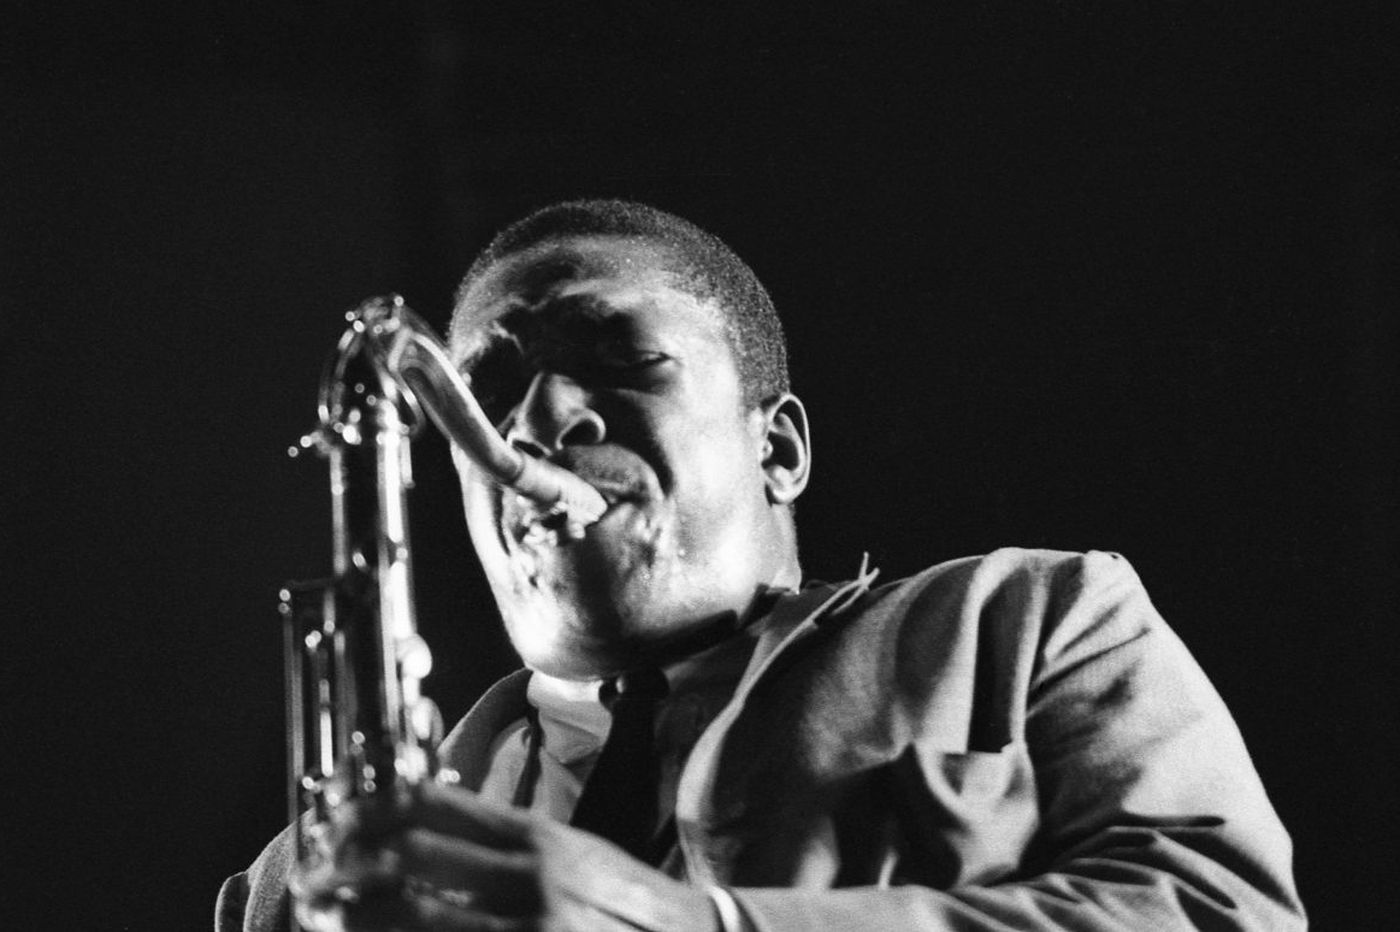 'Chasing Trane' looks at Philly-trained jazz legend John Coltrane